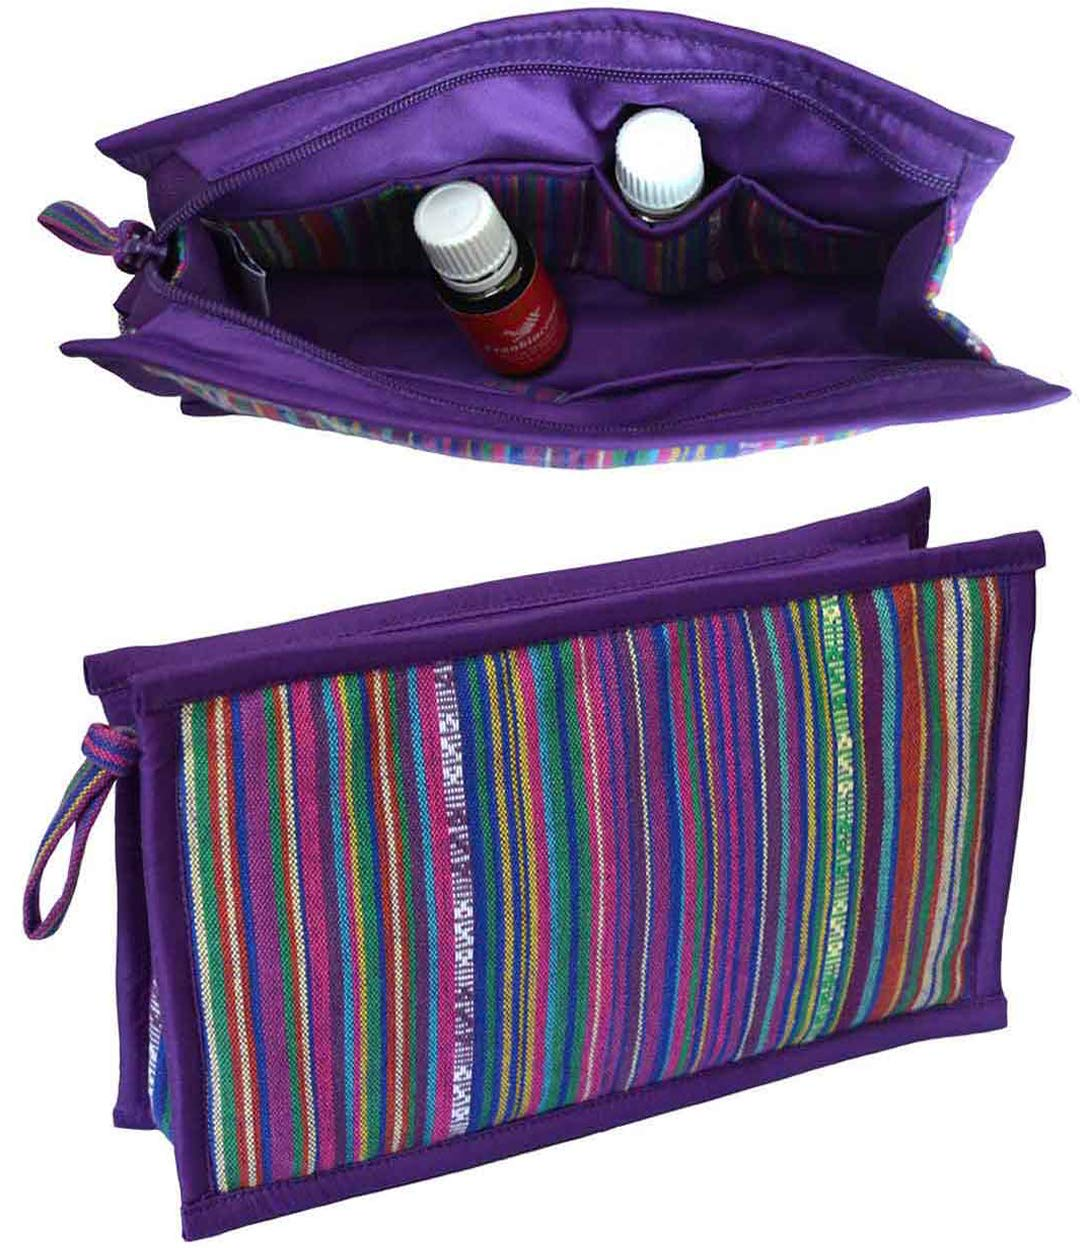 12 Bottle Essential Oil Case | Travel Bag for doTERRA - Young Living - Now | EO Pouch for 10ml Roller Bottles & 5ml 15ml Oils | KEEP YOUR OILS SAFE & AT YOUR FINGERTIPS (Purple)